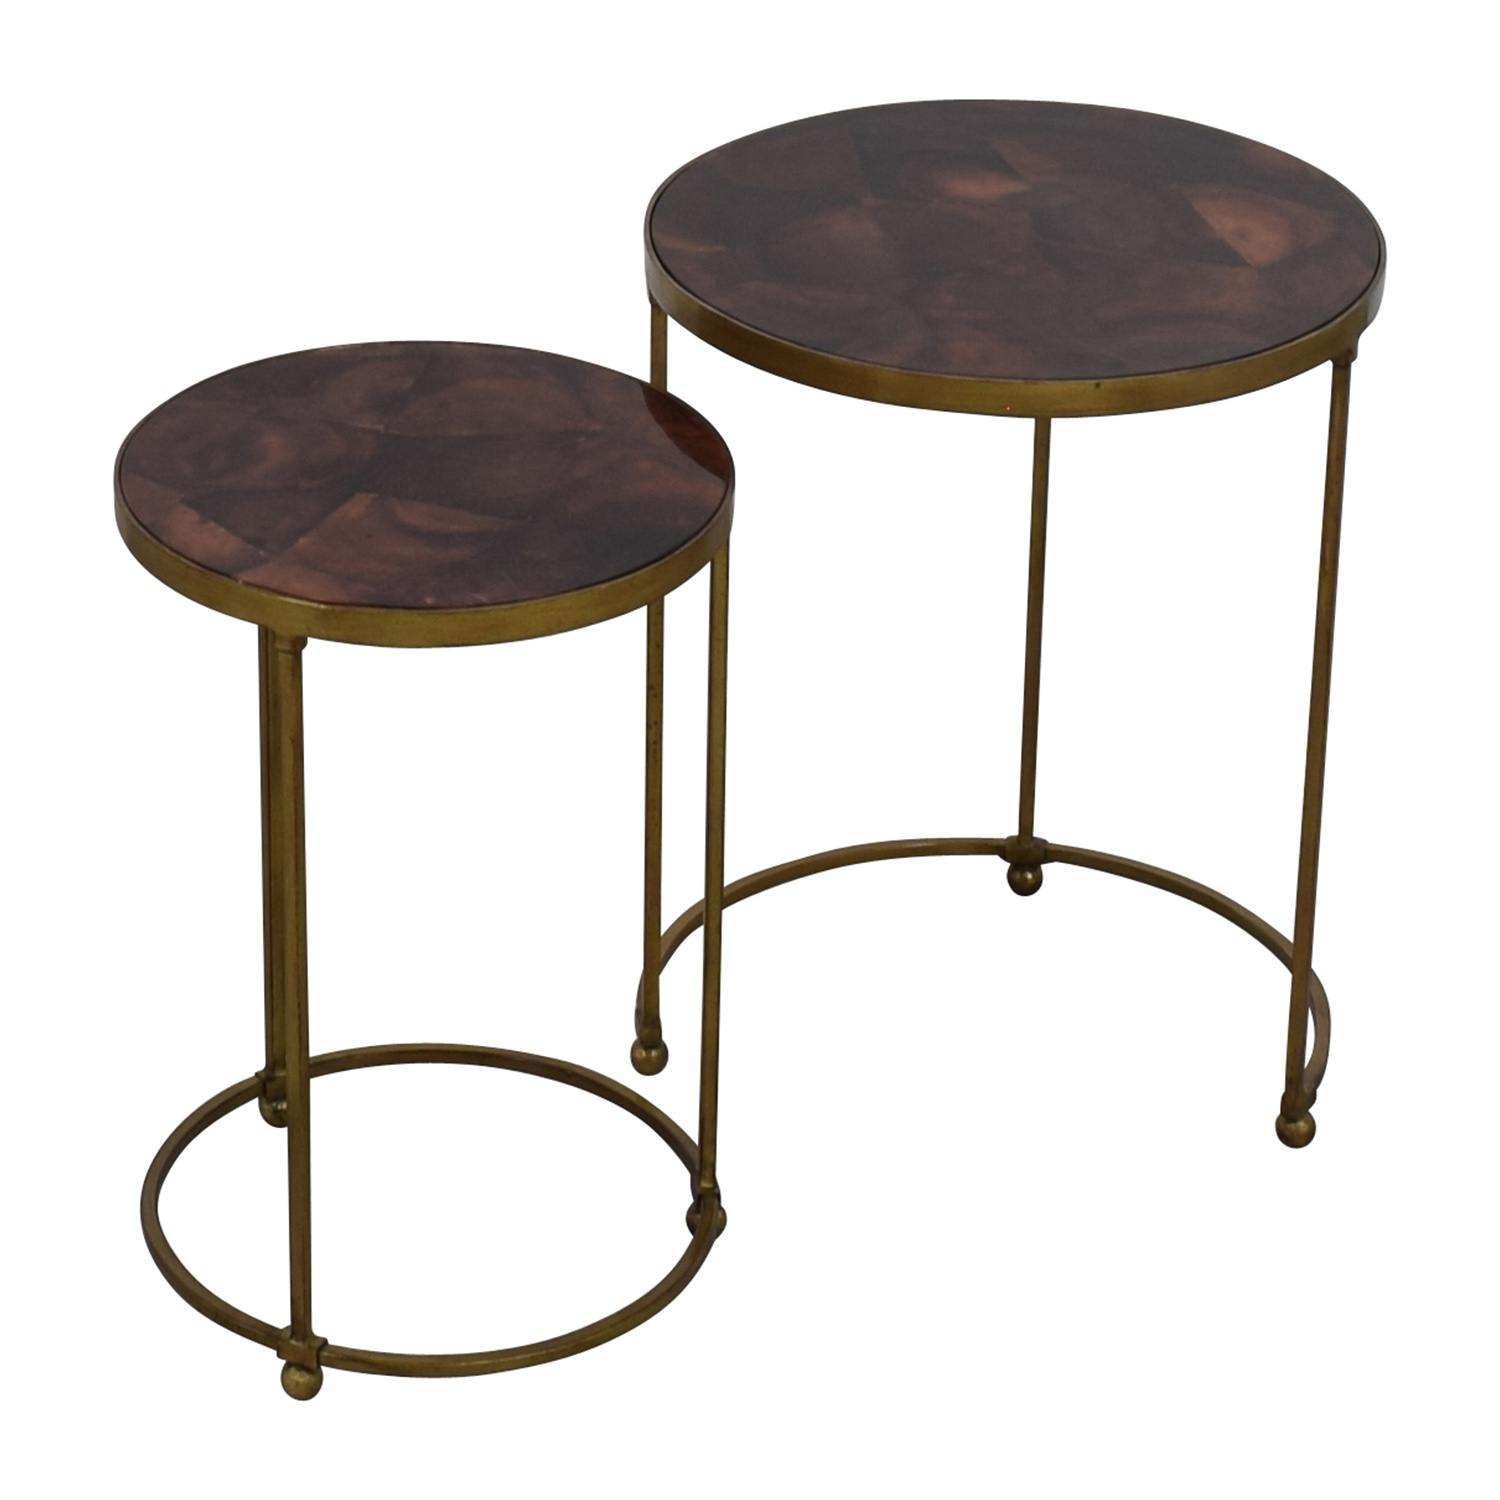 buy ABC Carpet & Home Nesting Round Bronze and Brass Accent Tables ABC Carpet and Home